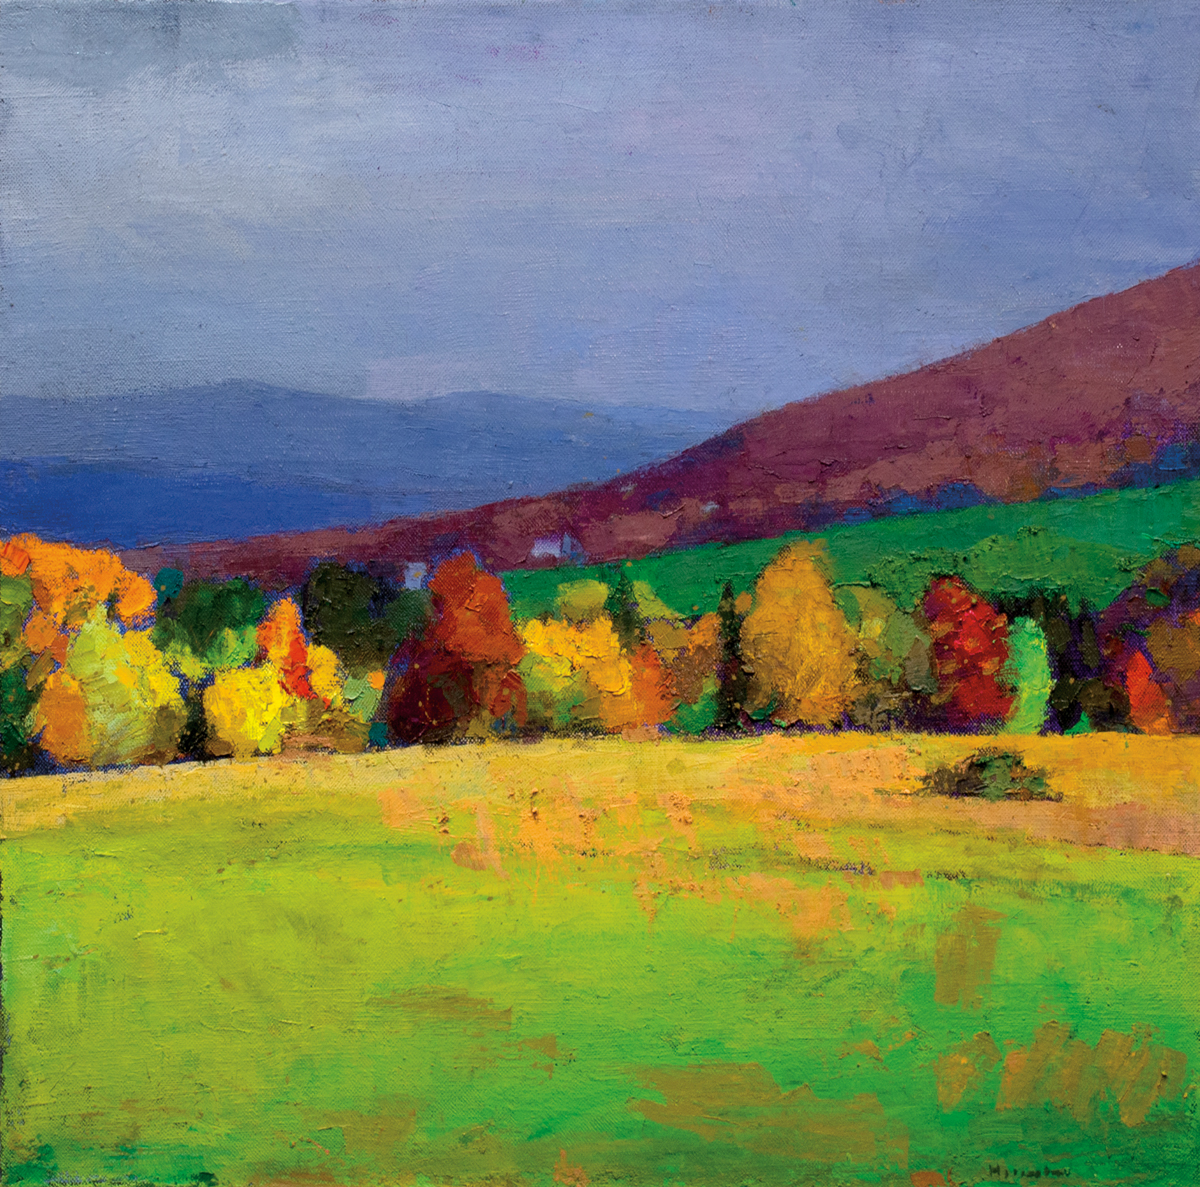 LARRY HOROWITZ, Fall Drama, oil on canvas, 34 x 34 in, 2015